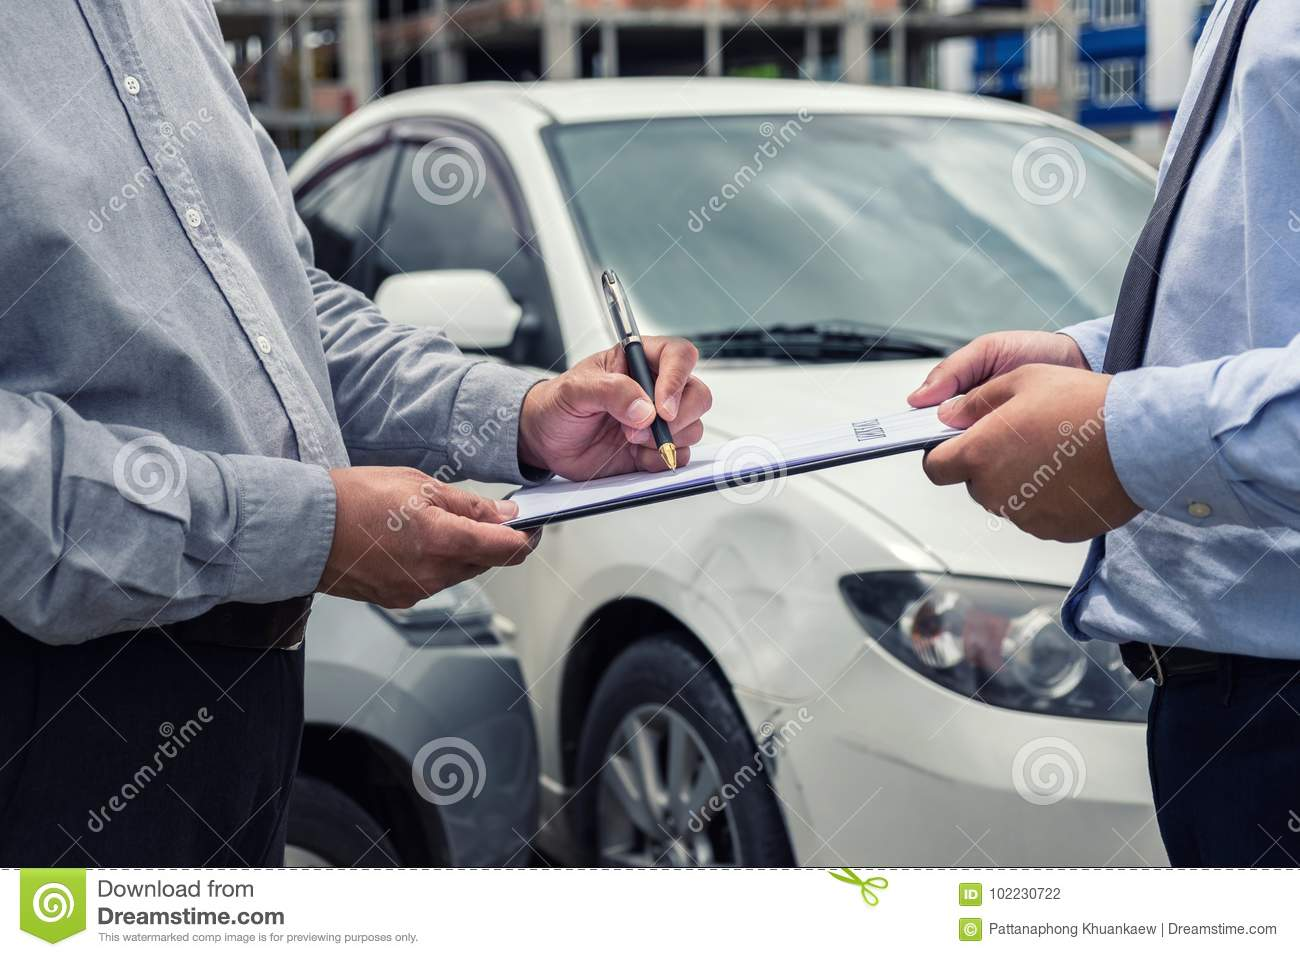 Car Insurance After Accident >> Insurance Agent Examine Damaged Car And Customer Filing